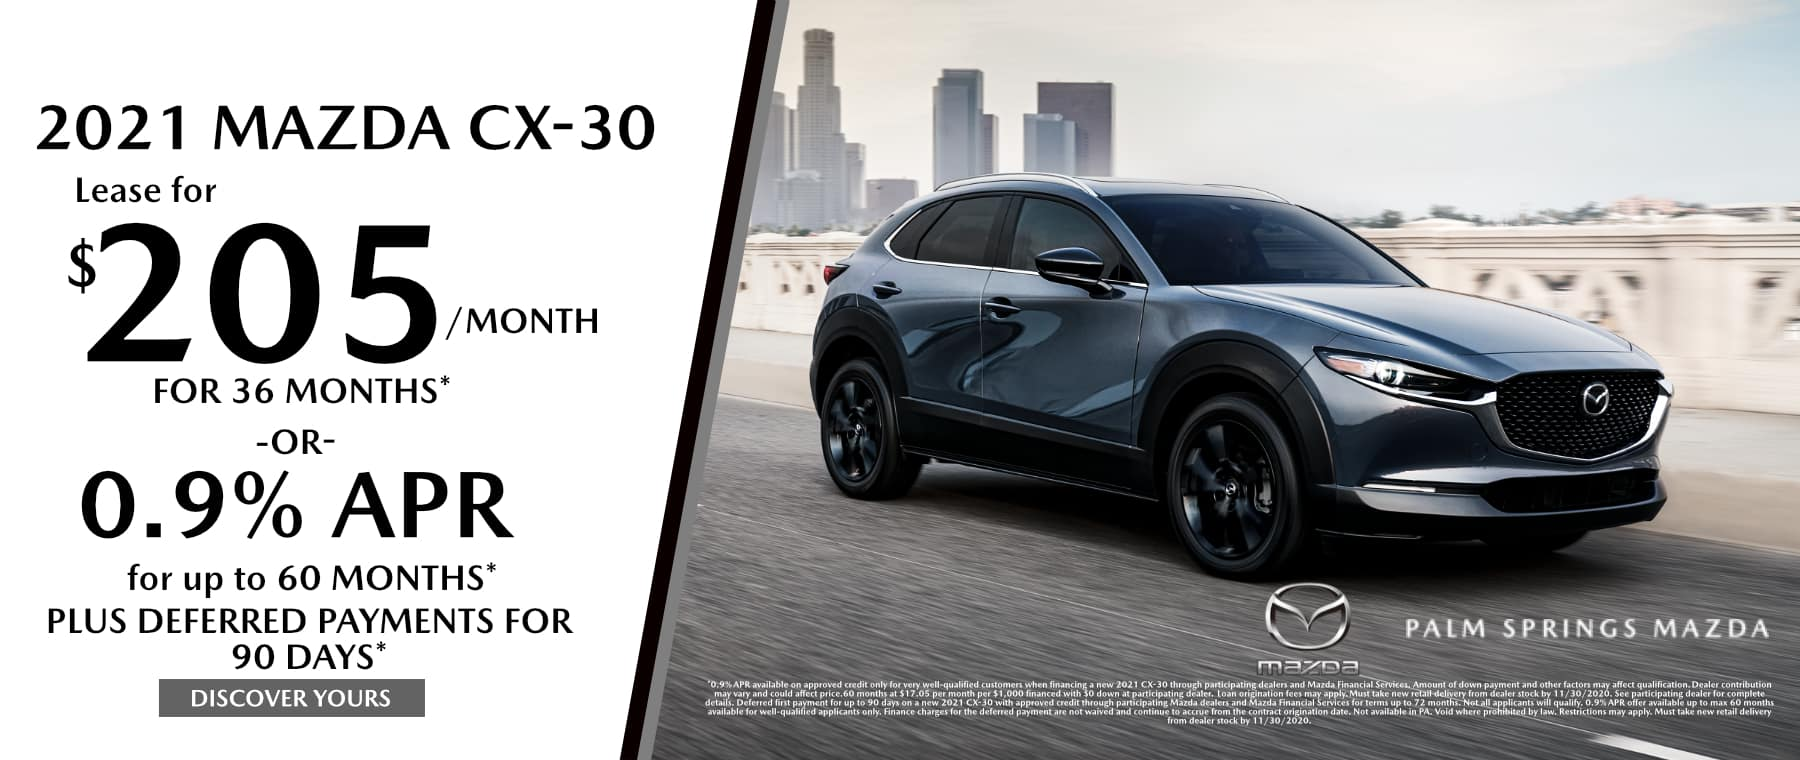 November-2020 CX30 Palm Springs Mazda